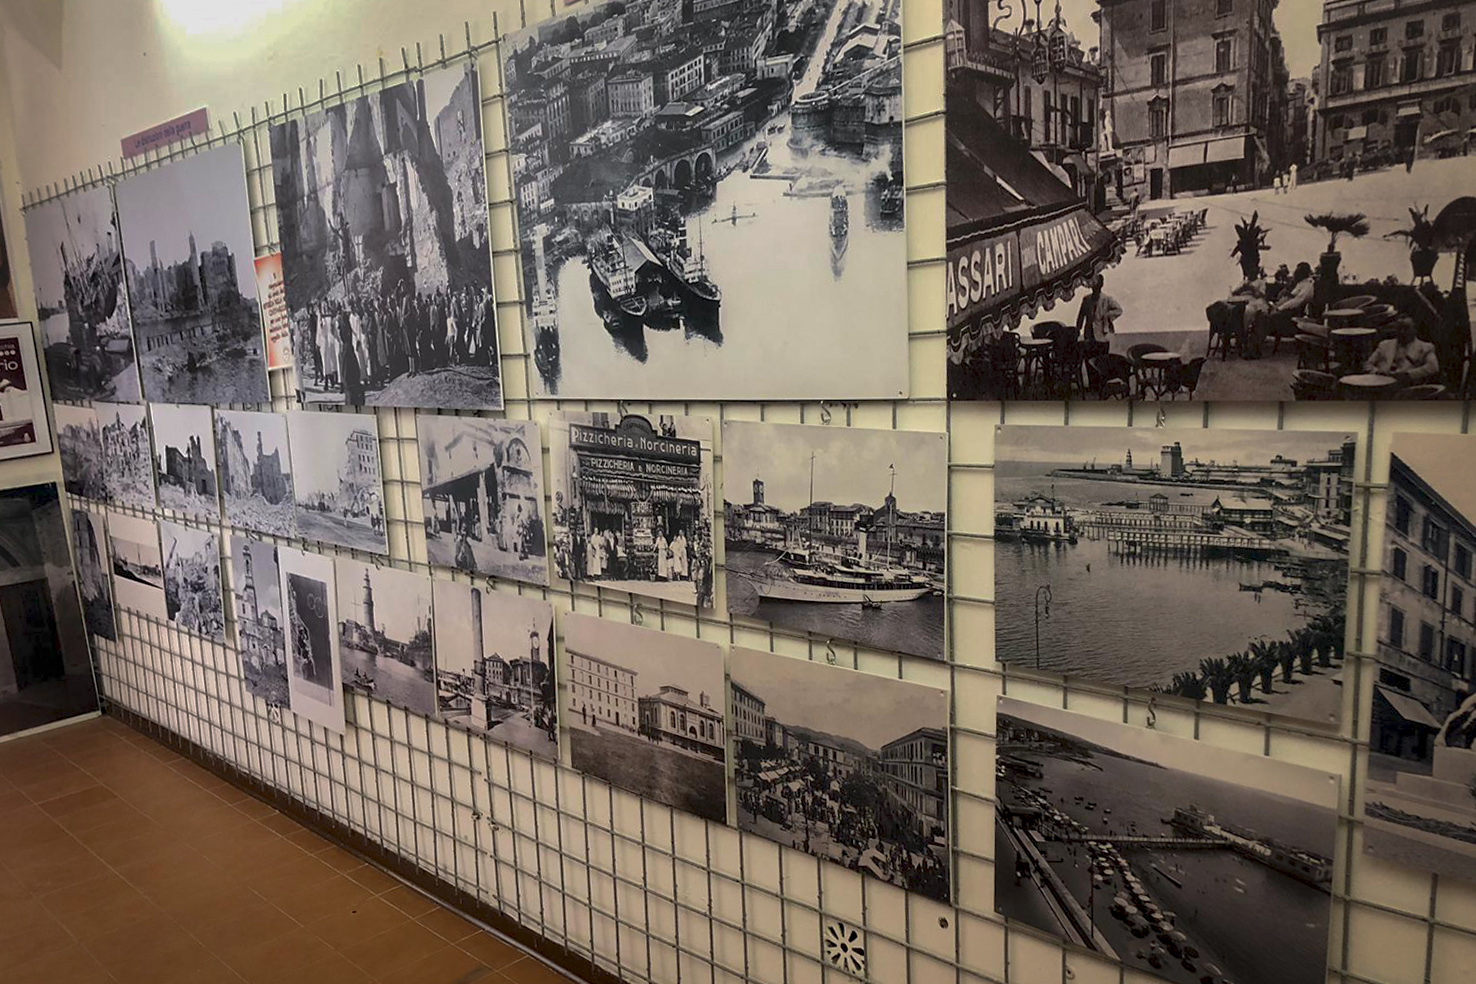 Some antique photographies displayed at Casa della Memoria di Civitavecchia